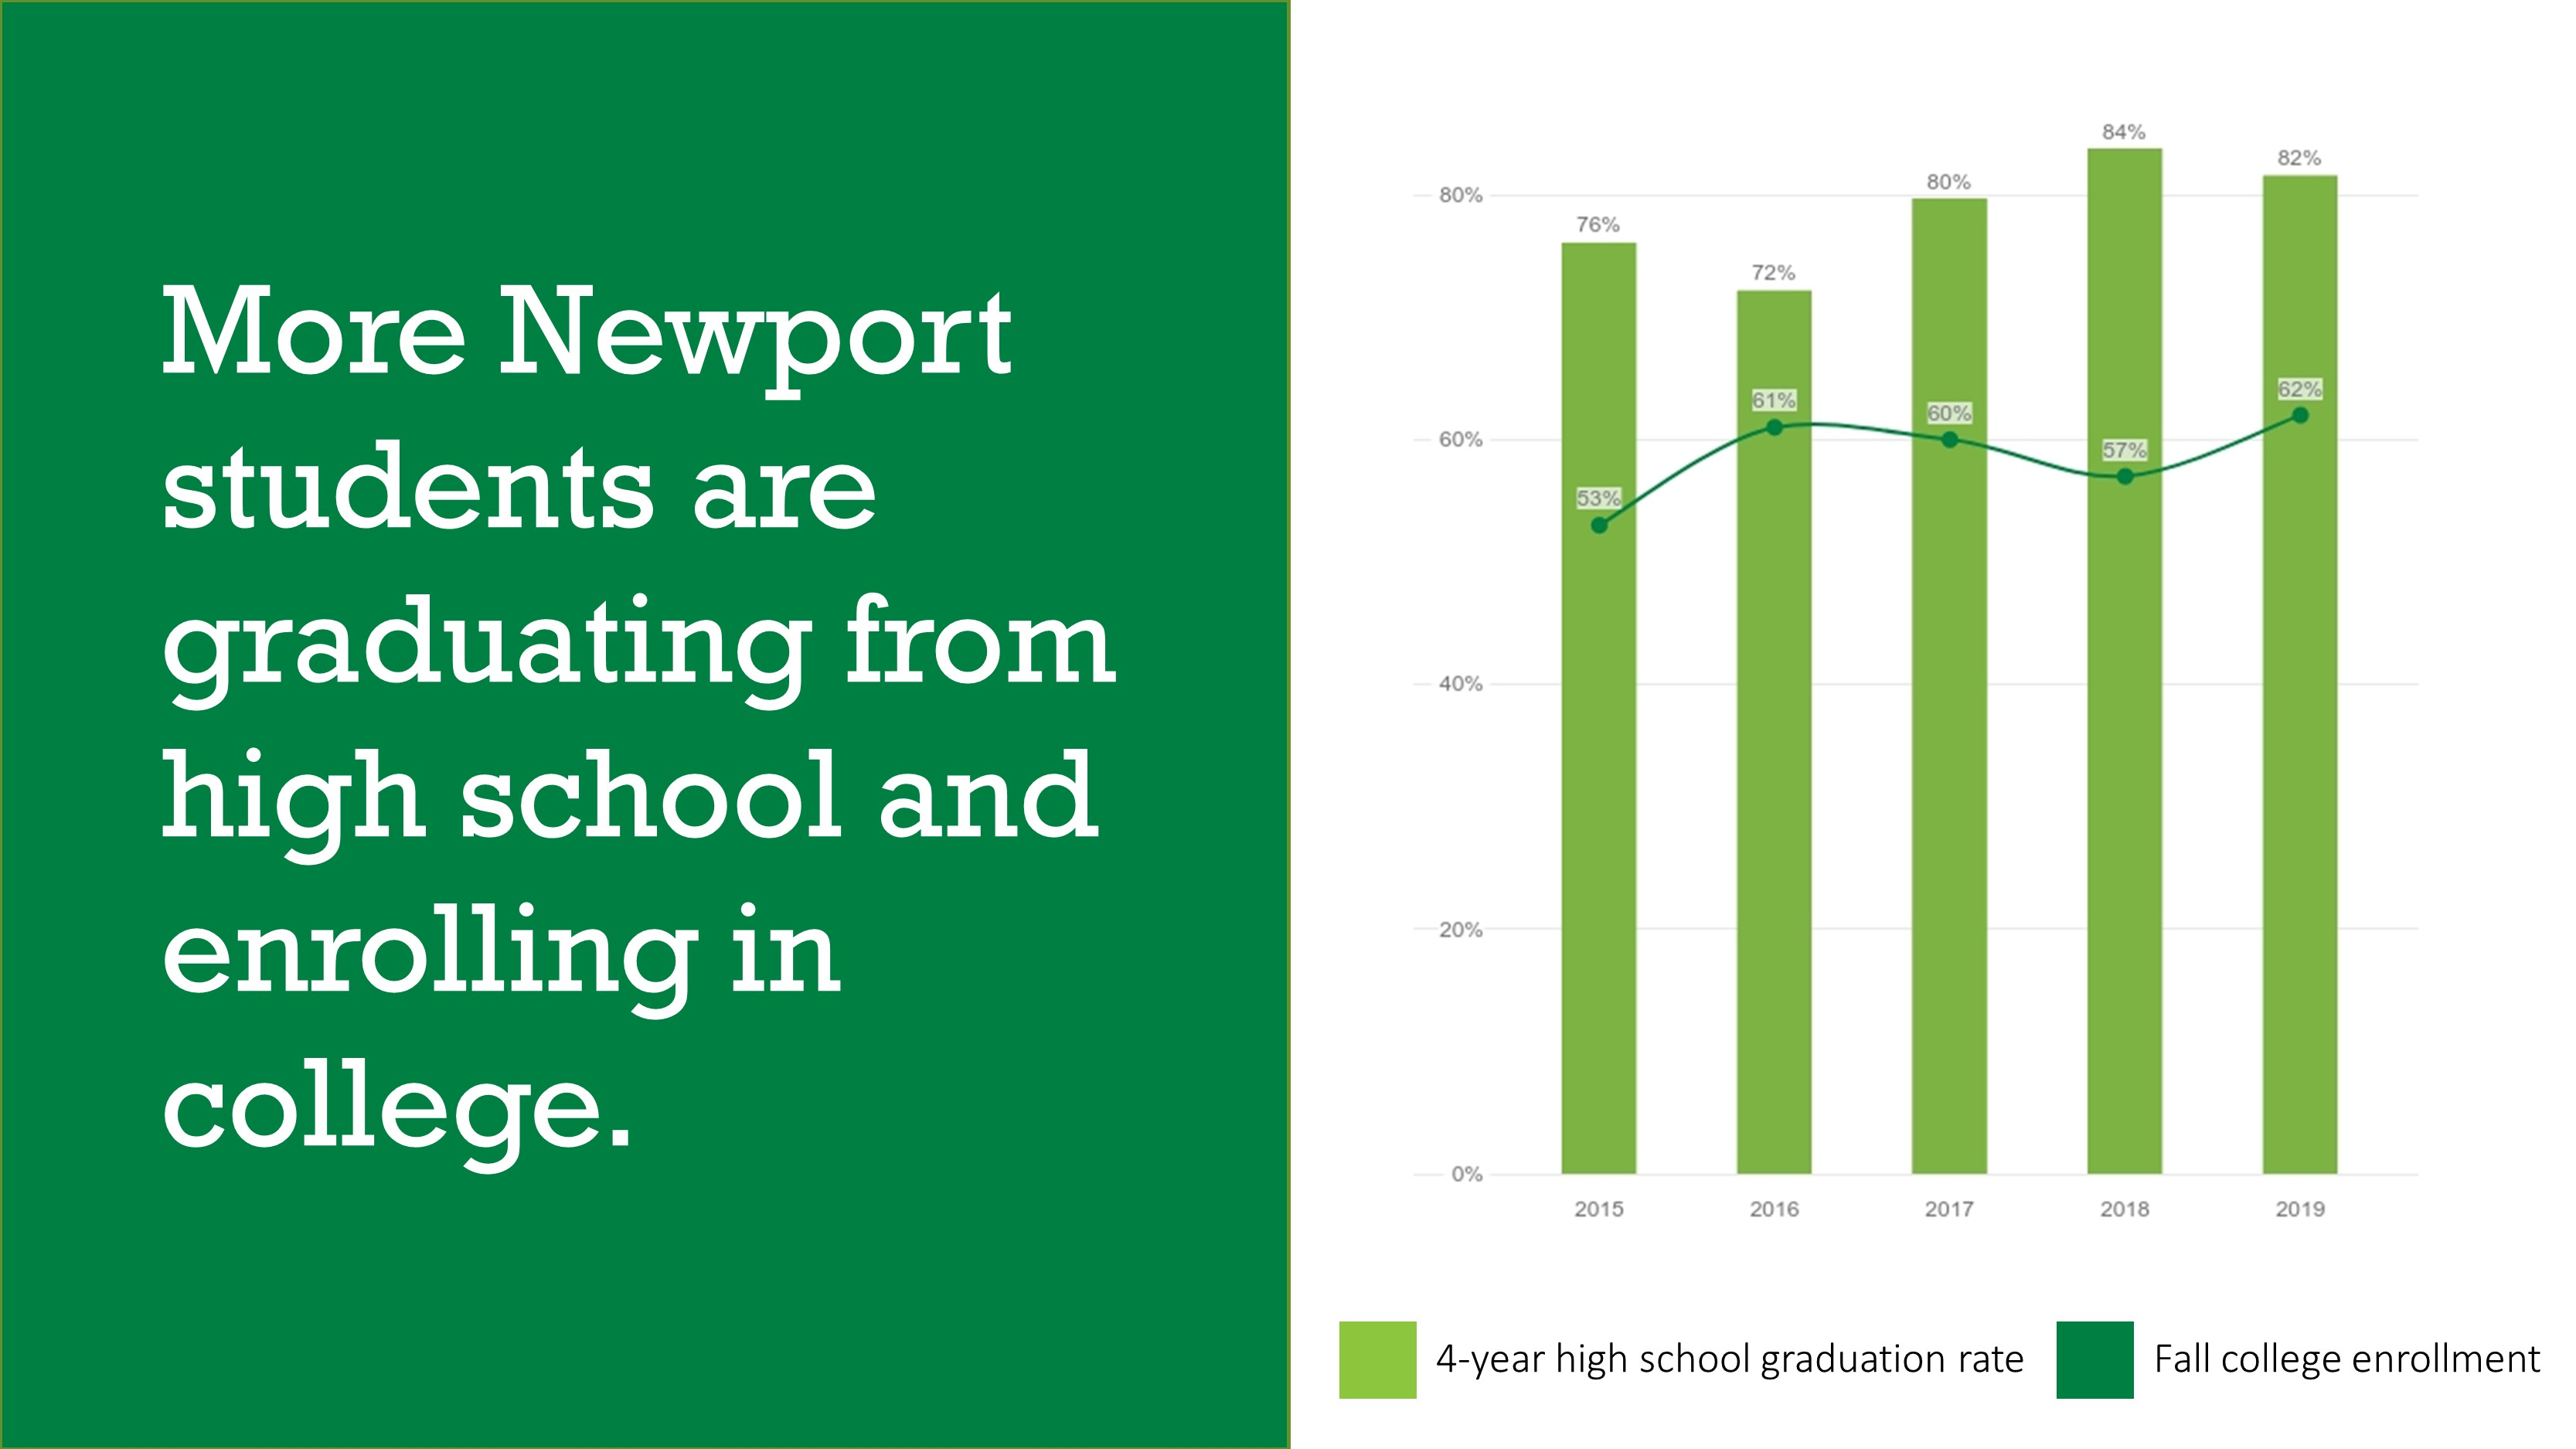 More Newport students are graduating high school and enrolling in college.